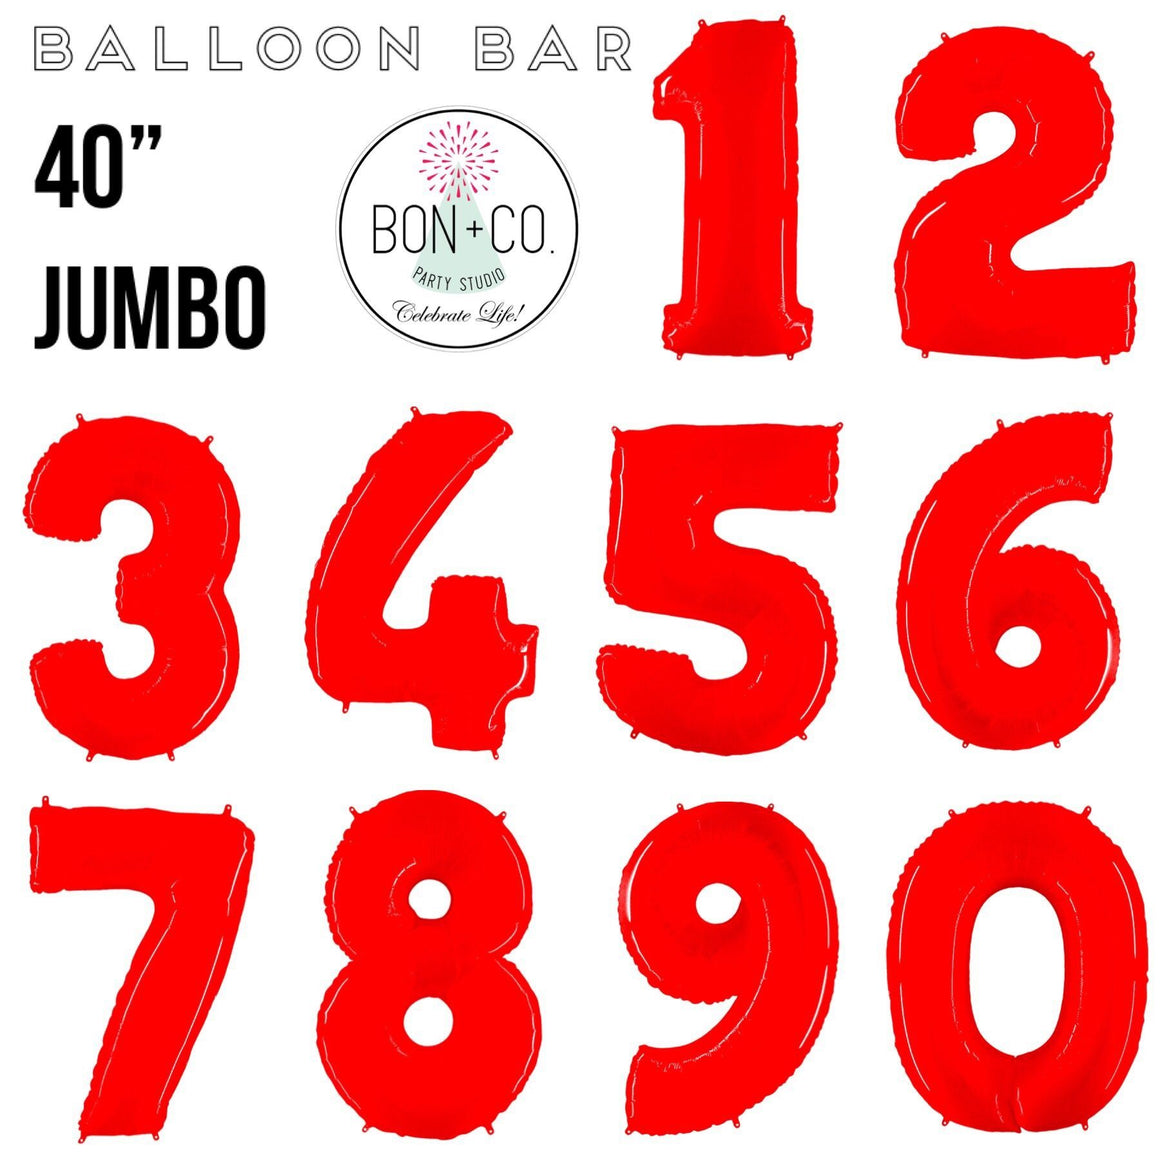 "BALLOON BAR - 40"" JUMBO NUMBER BRIGHT RED, Balloons, bargain balloons - Bon + Co. Party Studio"